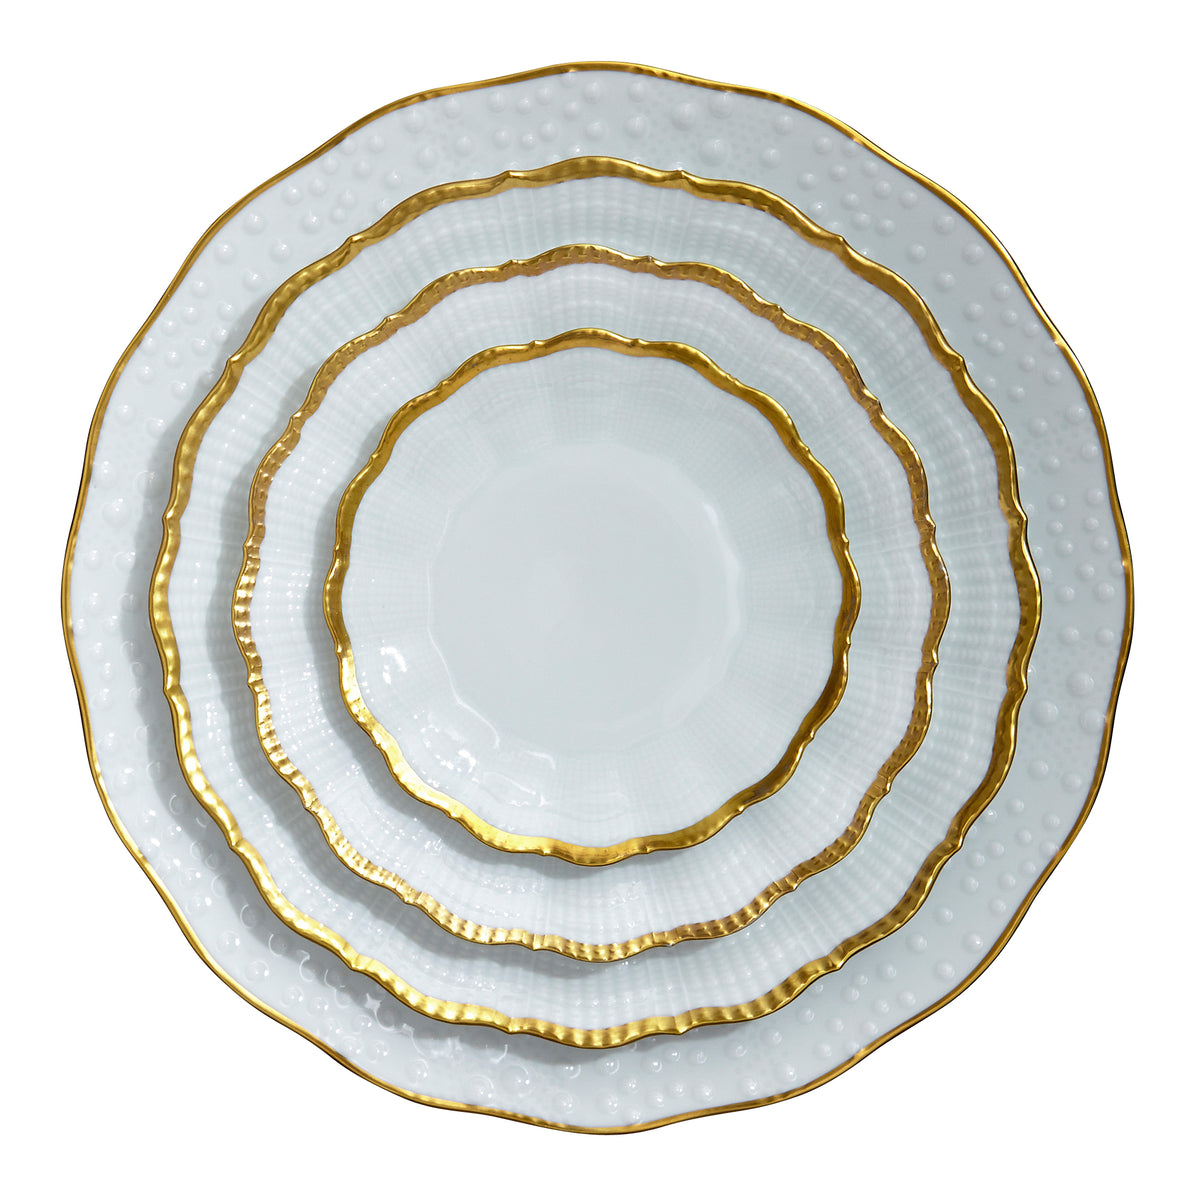 Corail Or Porcelain Dessert Plate